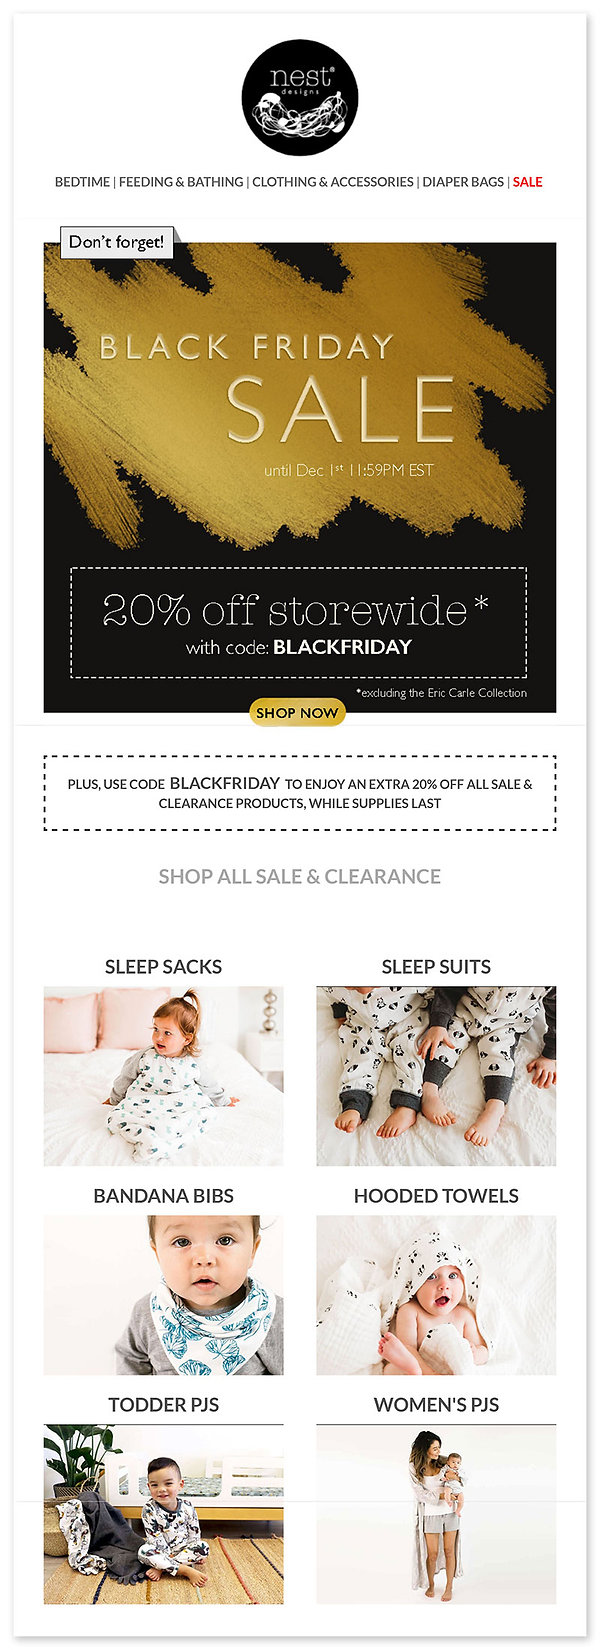 Black-Friday-Sale-Continues-eBlast.jpg